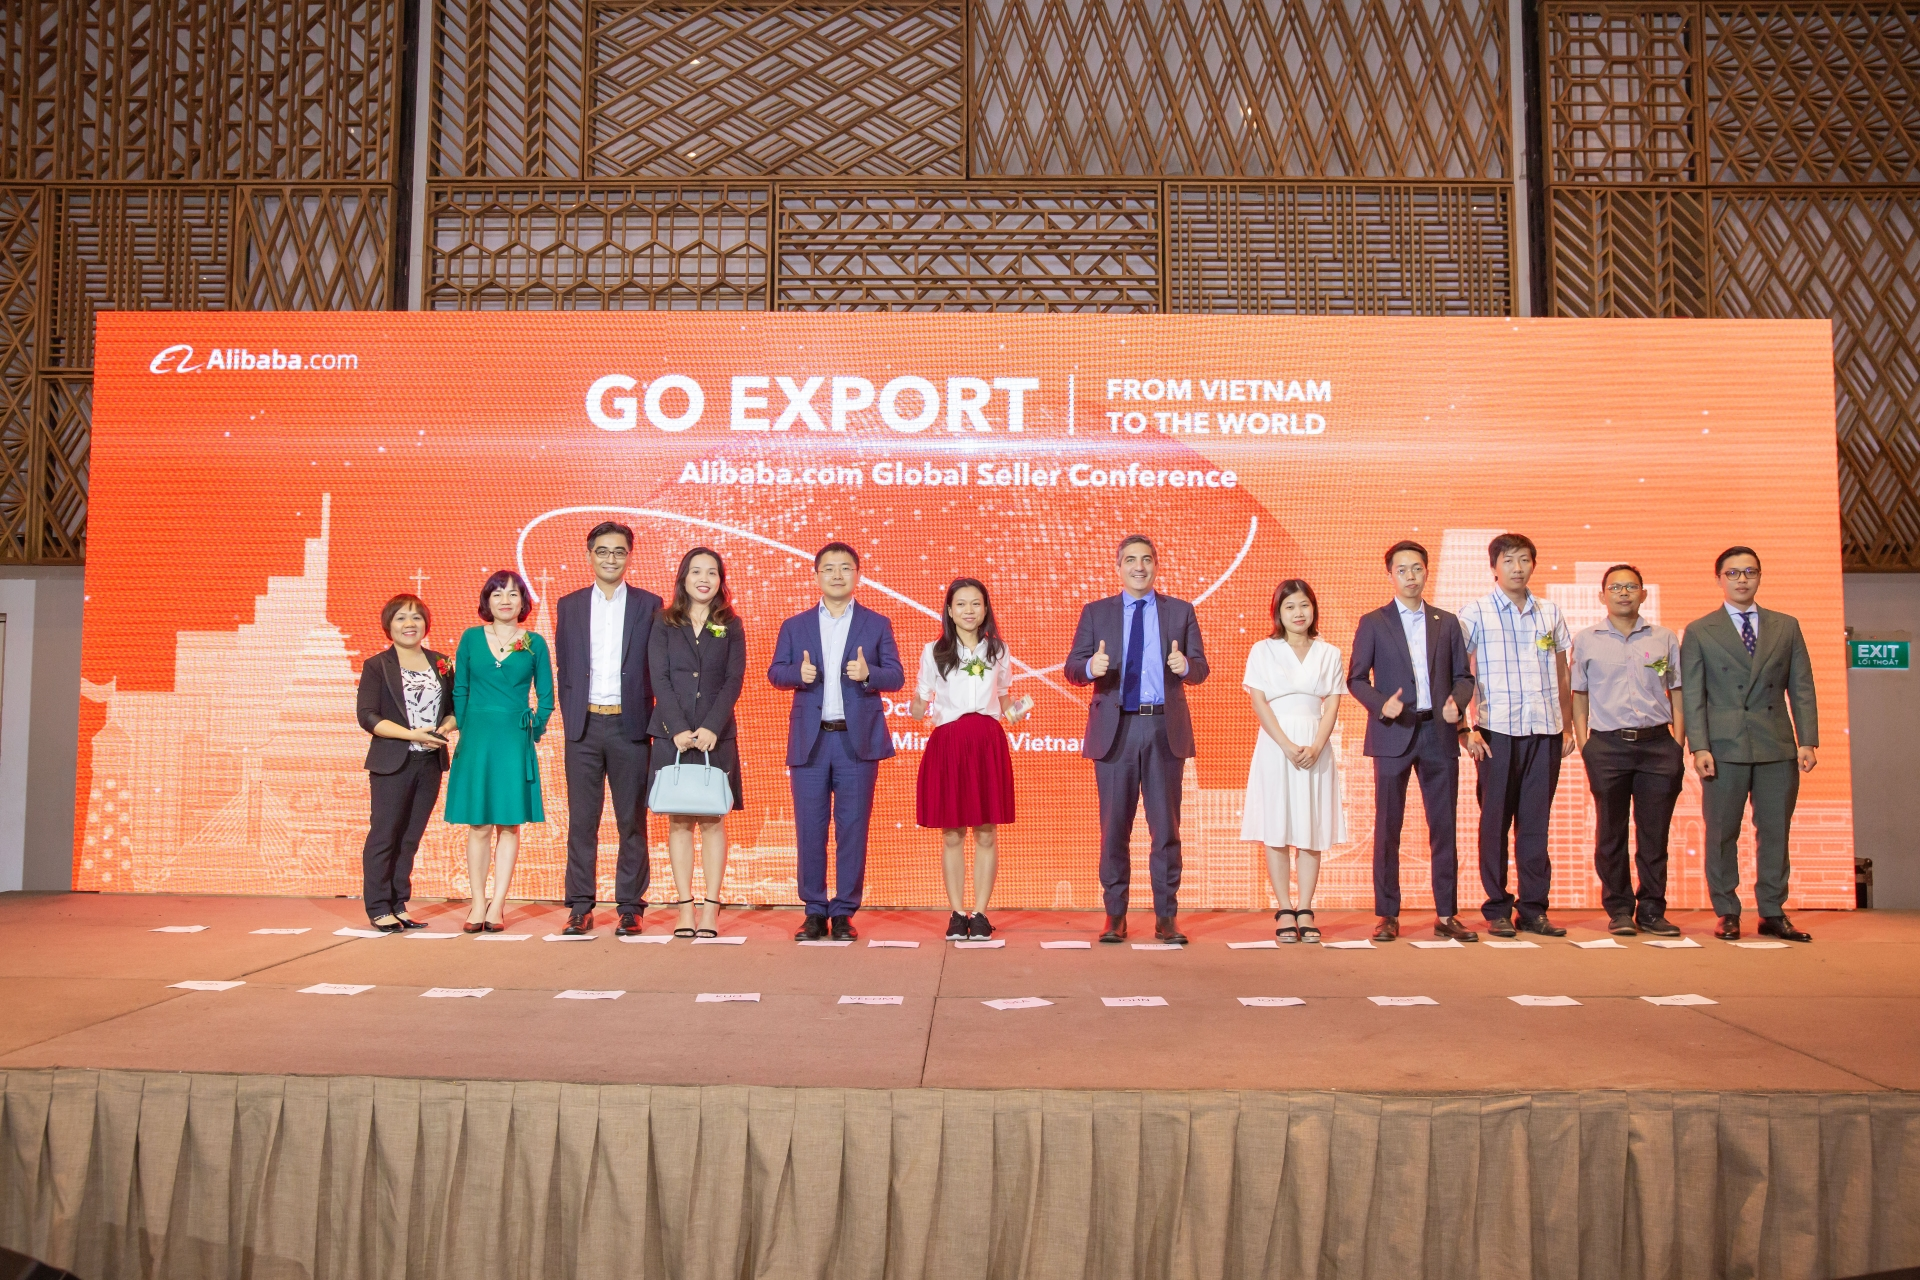 Alibaba.com gives wing to Vietnamese SMEs to go global